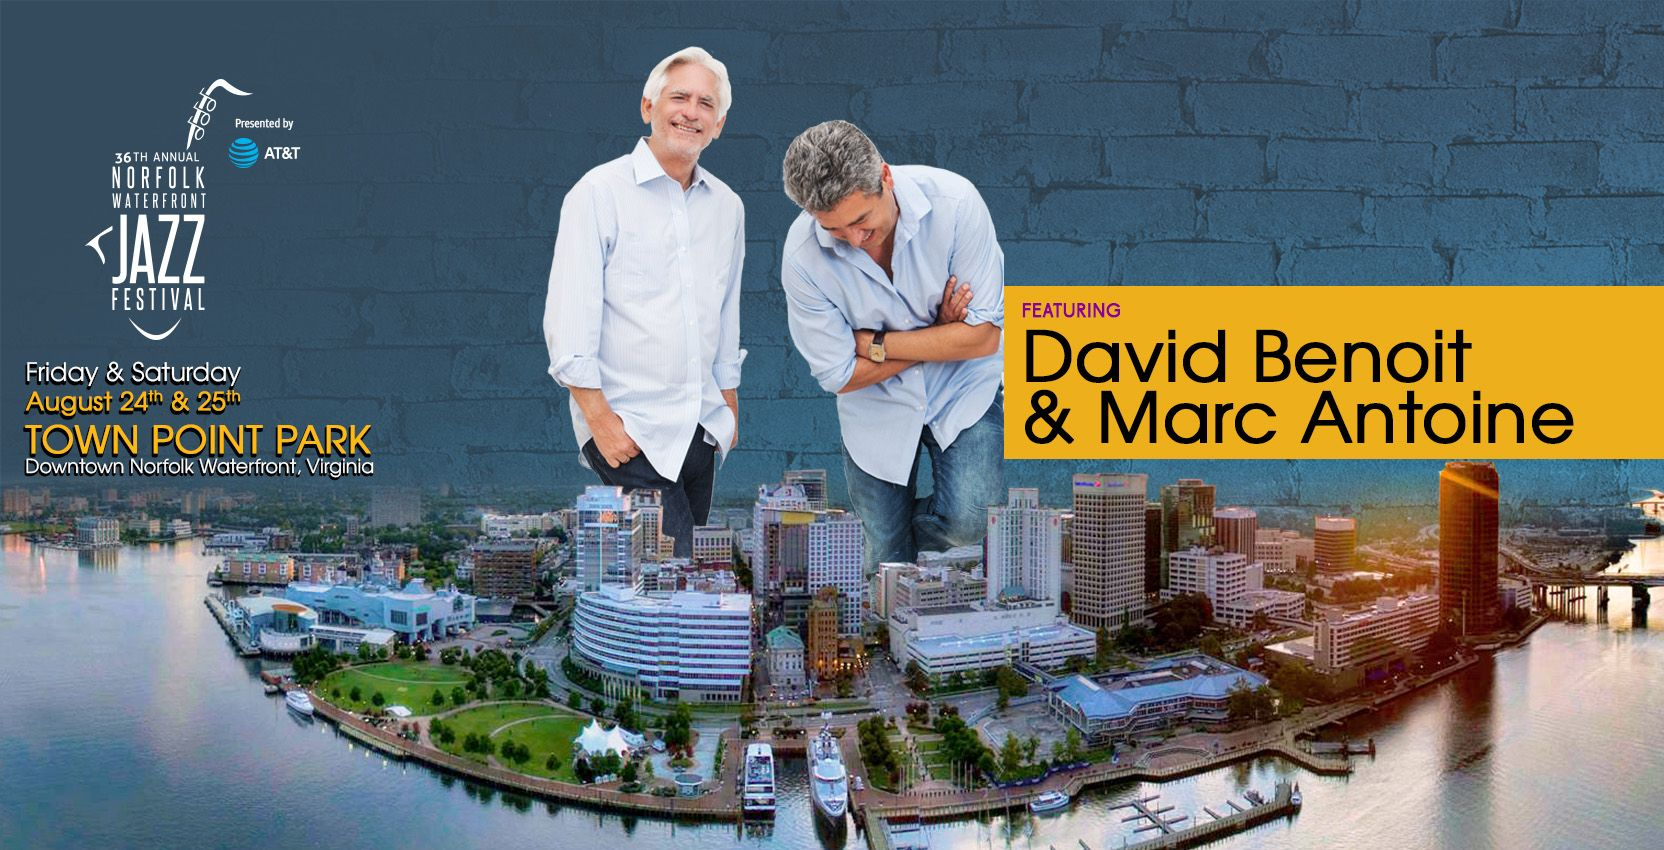 DavidBenoit and Marc Antoine Header.jpg